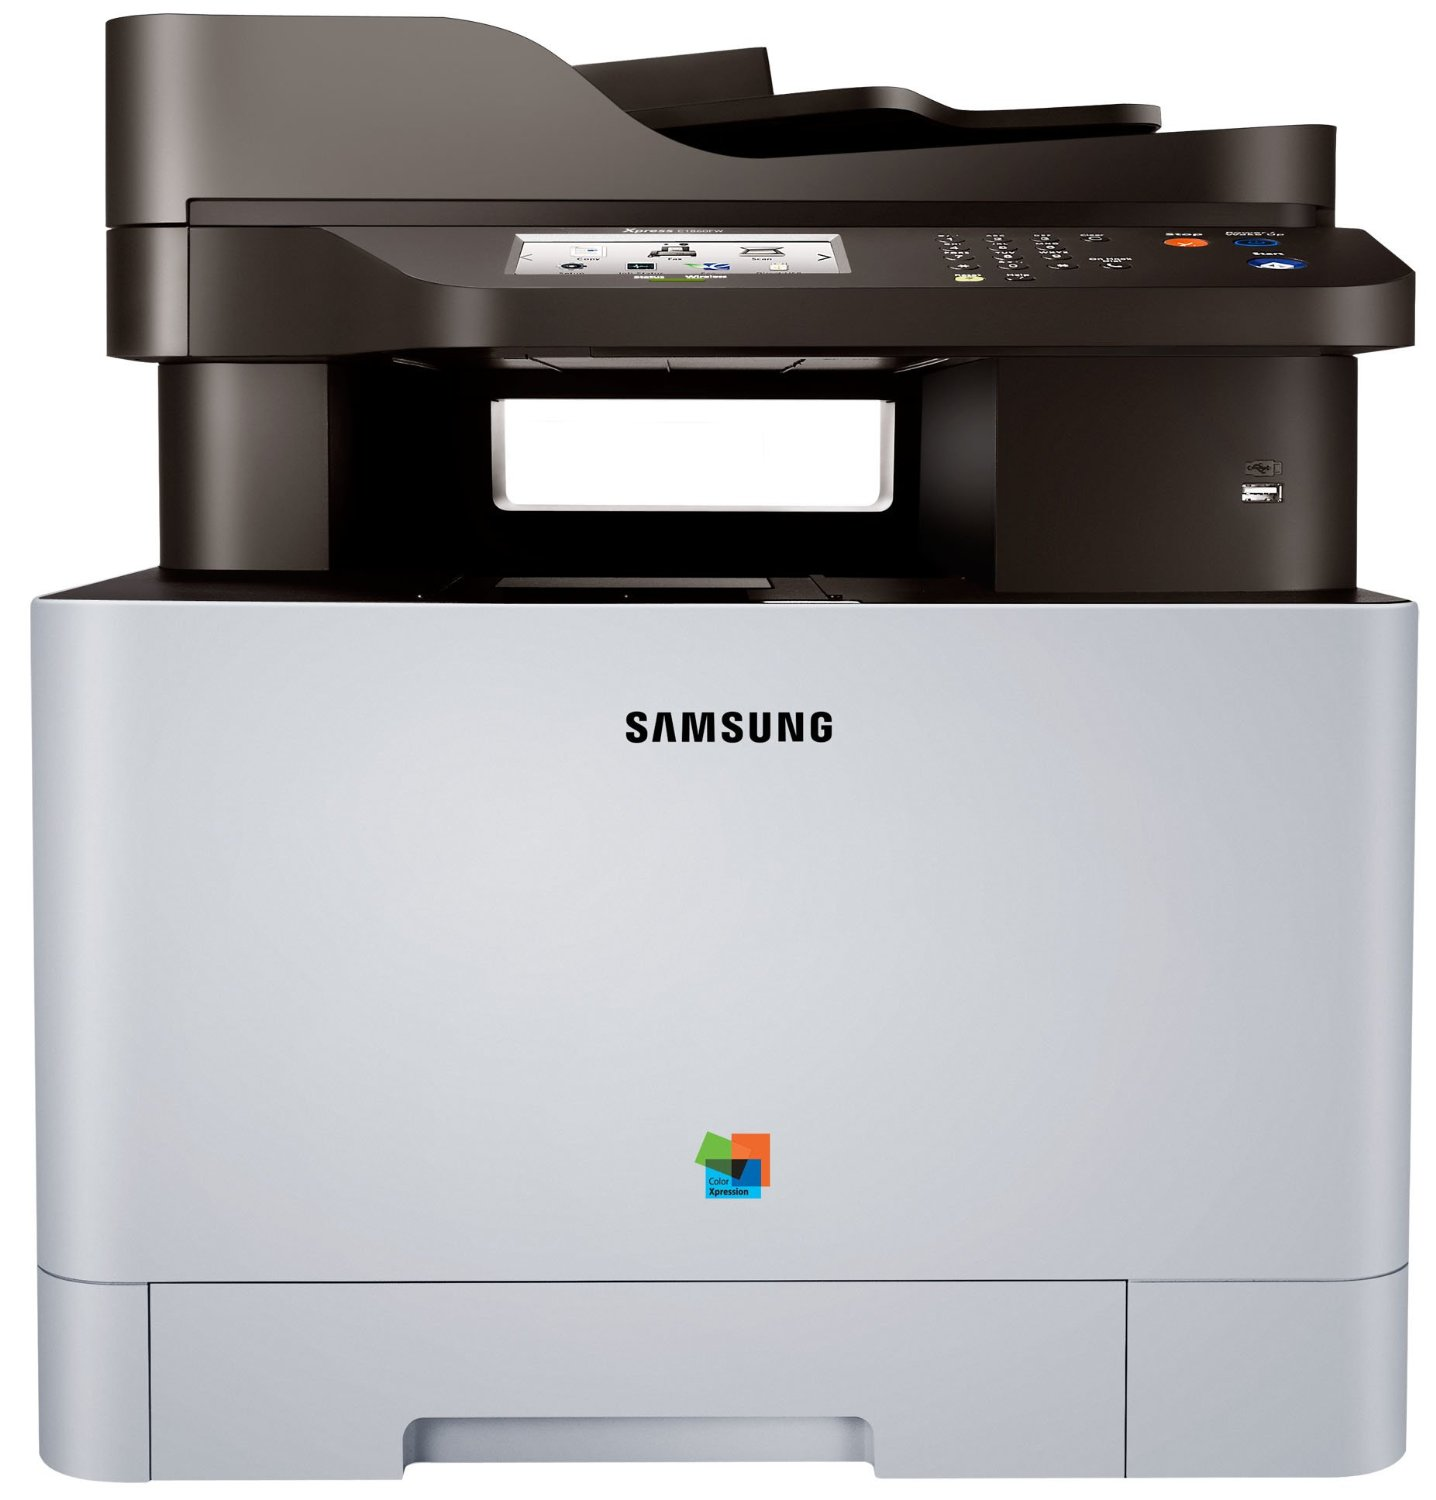 """Samsung Xpress C1860FW Color Laser MFP (19 ppm) (533 MHz) (256 MB) (8.5"""" x 14"""") (9600 x 600 dpi) (Max Duty Cycle 40000 Pages) (p/s/c/f) (USB) (Ethernet) (Wireless) (Touchscreen) (250 Sheet Input Tray) (1 Sheet Multipurpose Tray) (50 Sheet ADF)"""